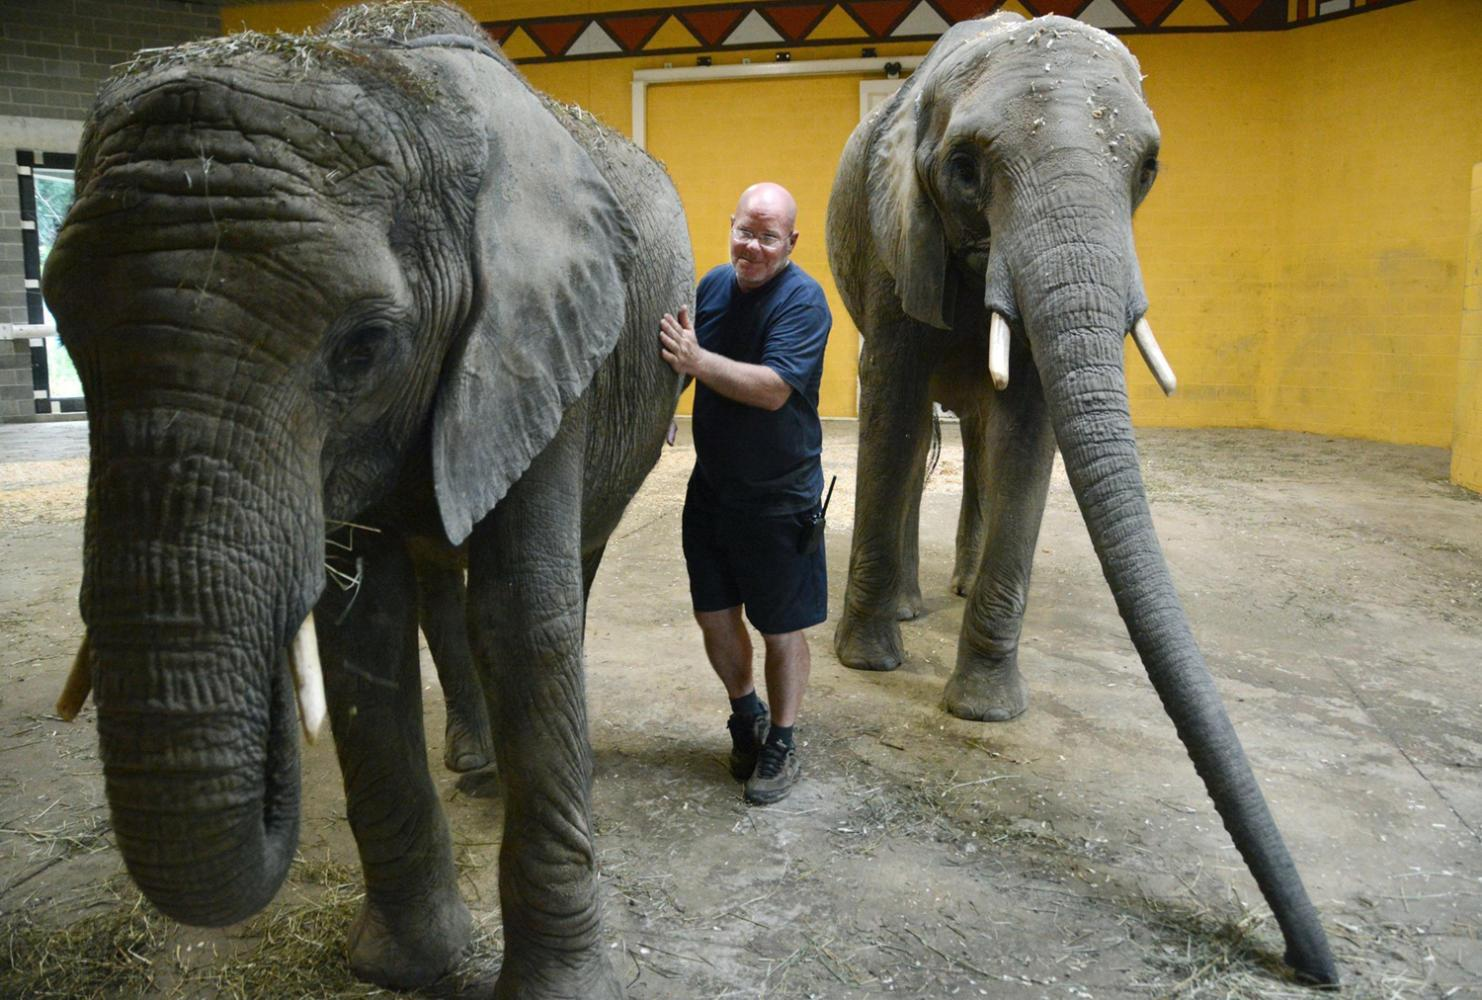 Willie Theison, elephant program manager at the Pittsburgh Zoo, attends to Zuri (left) and her sister, Victoria (right). (Nate Guidry/Pittsburgh Post-Gazette/MCT)